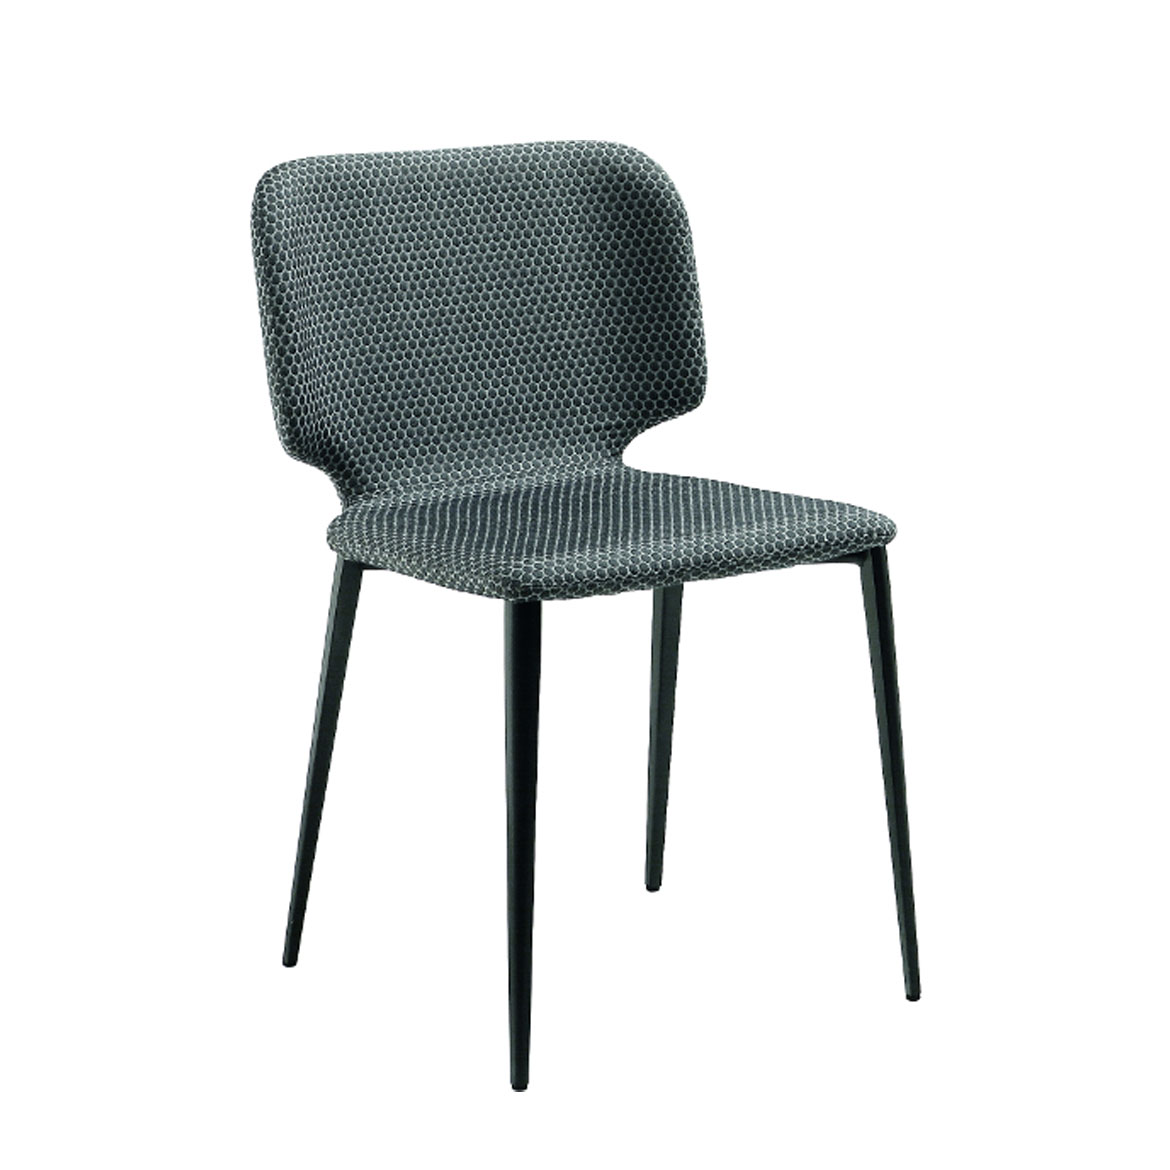 Wrap chair with four legs base in lacquered steel. Shell upholstered in leather, ecoleather, fabric or custom's fabric.